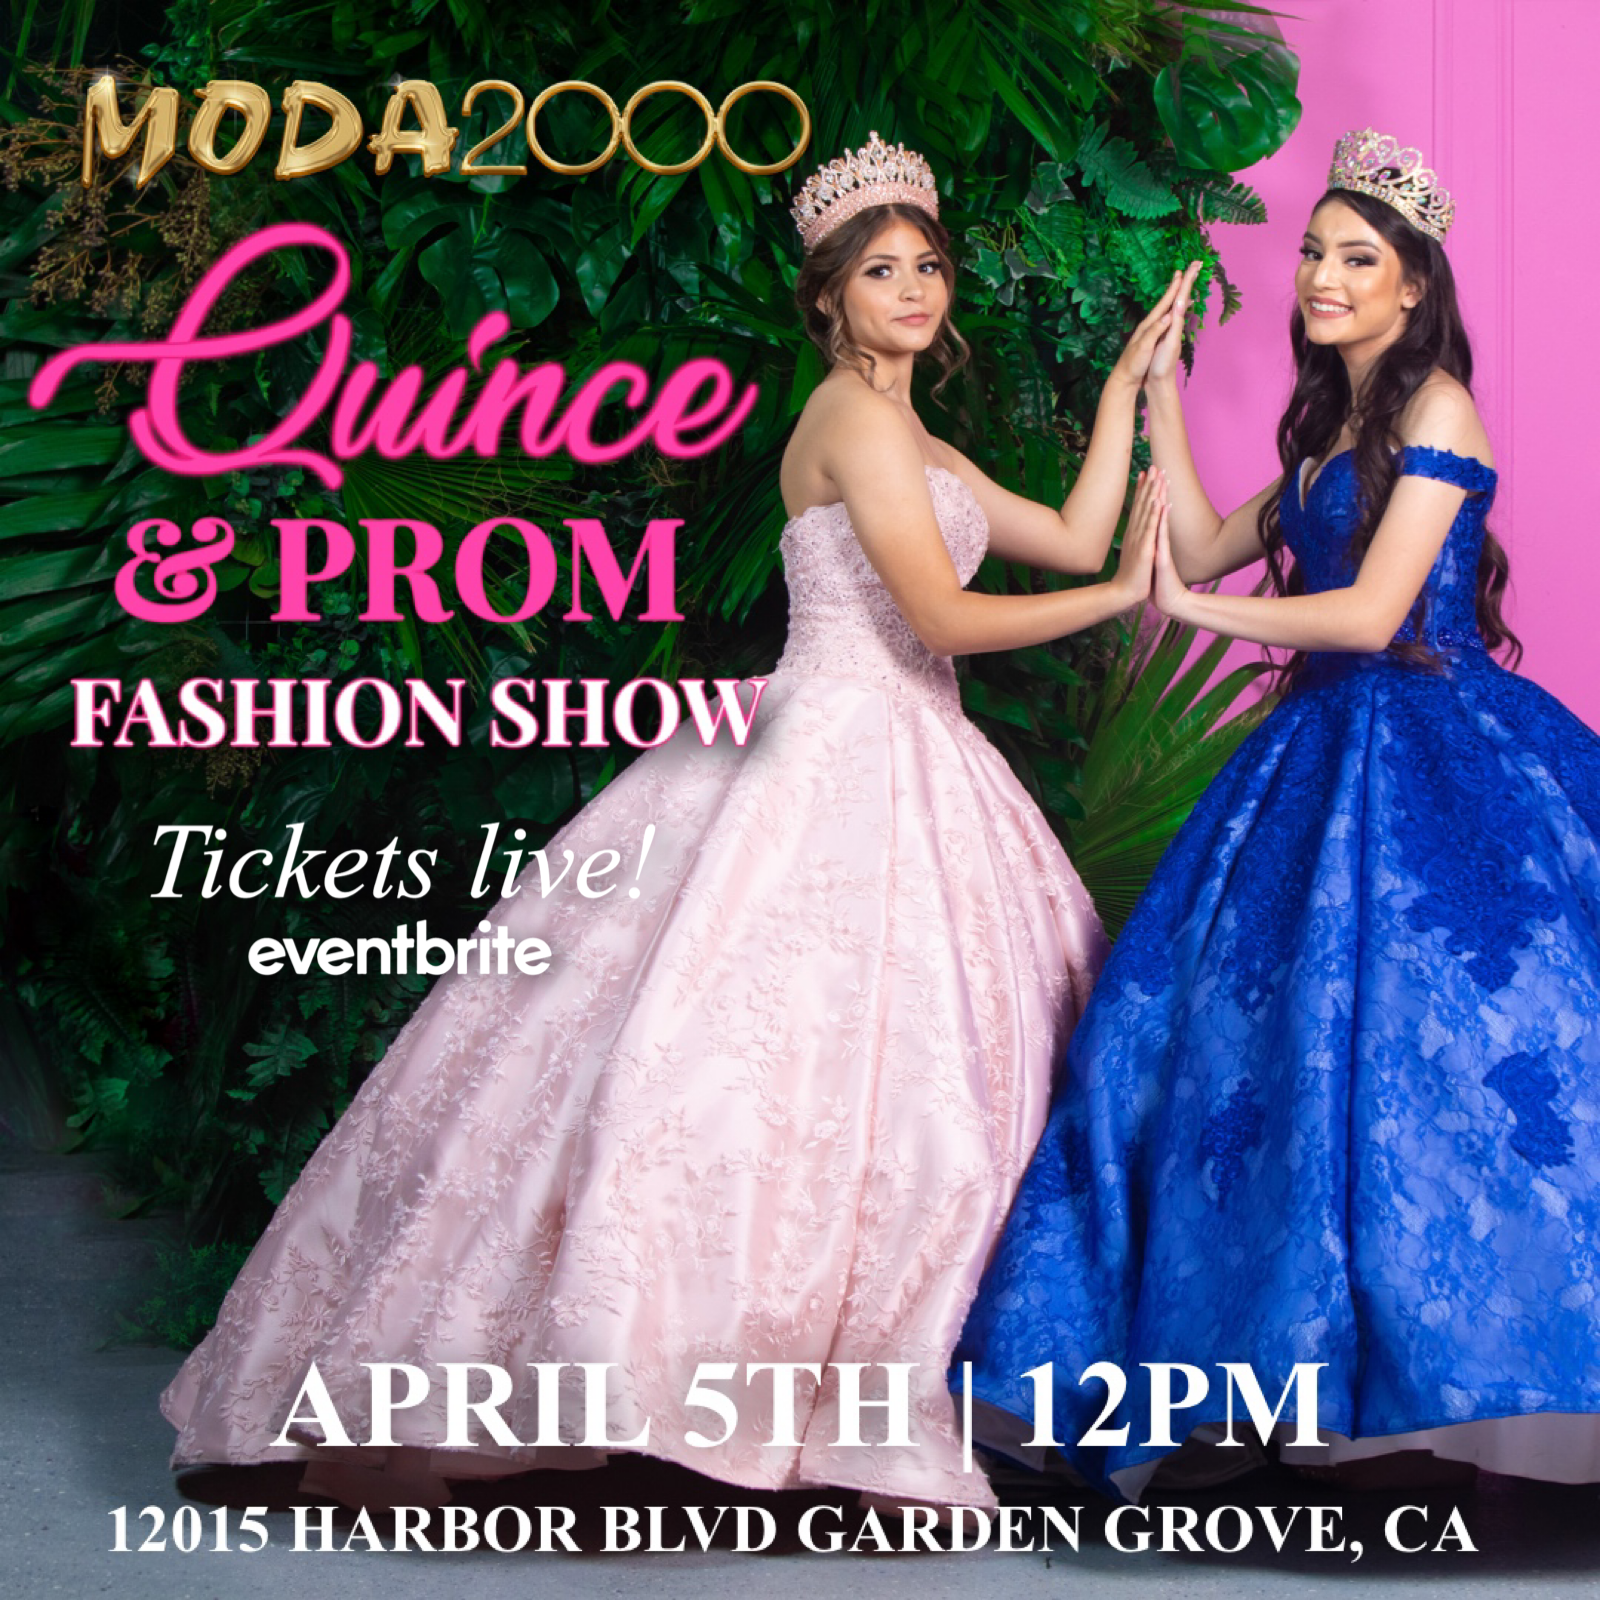 Fall in LOVE with the dress of your dreams, as Moda 2000